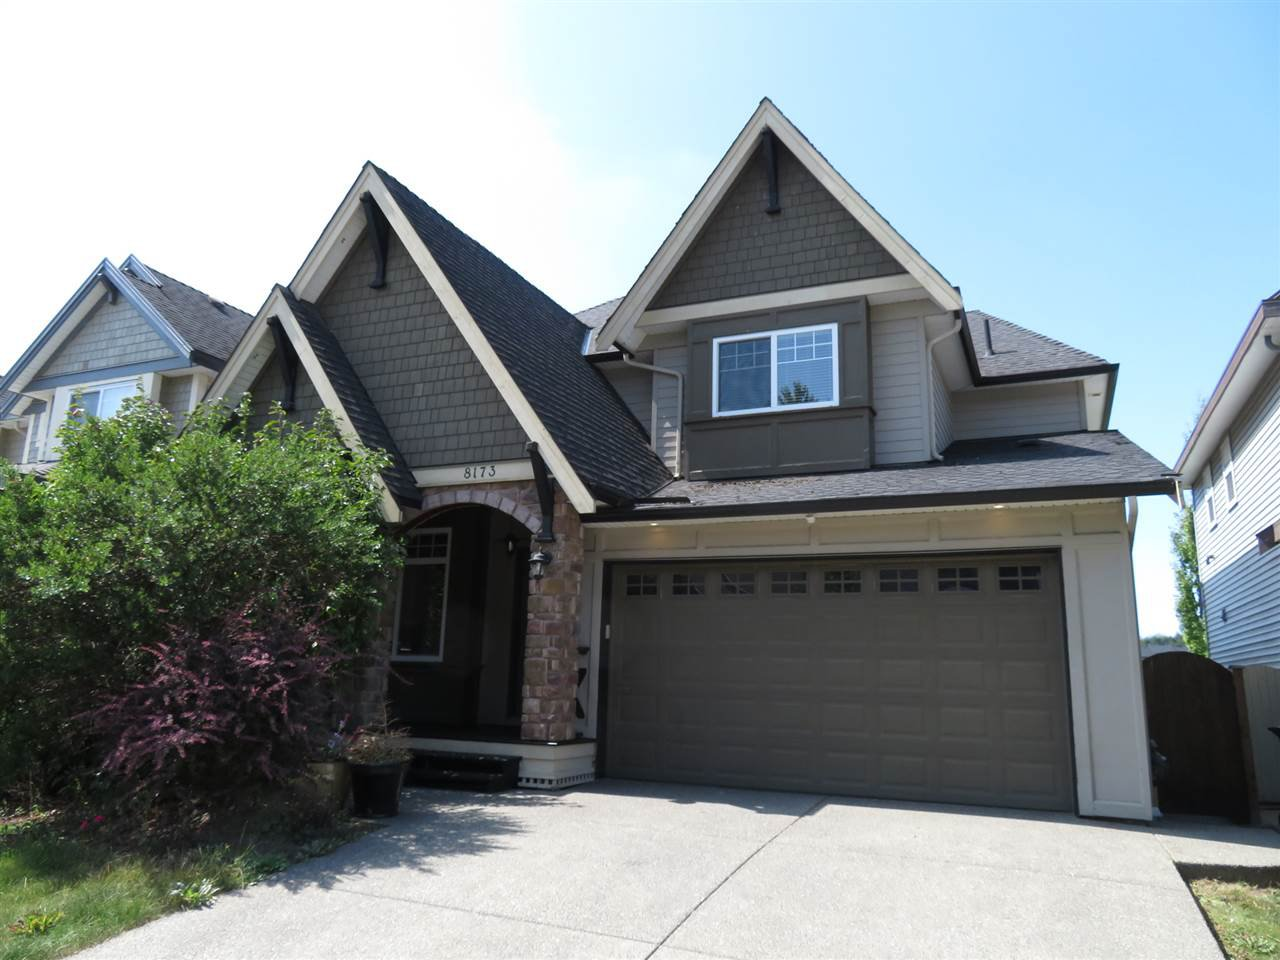 Main Photo: 8173 211 Street in Langley: Willoughby Heights House for sale : MLS®# R2396350